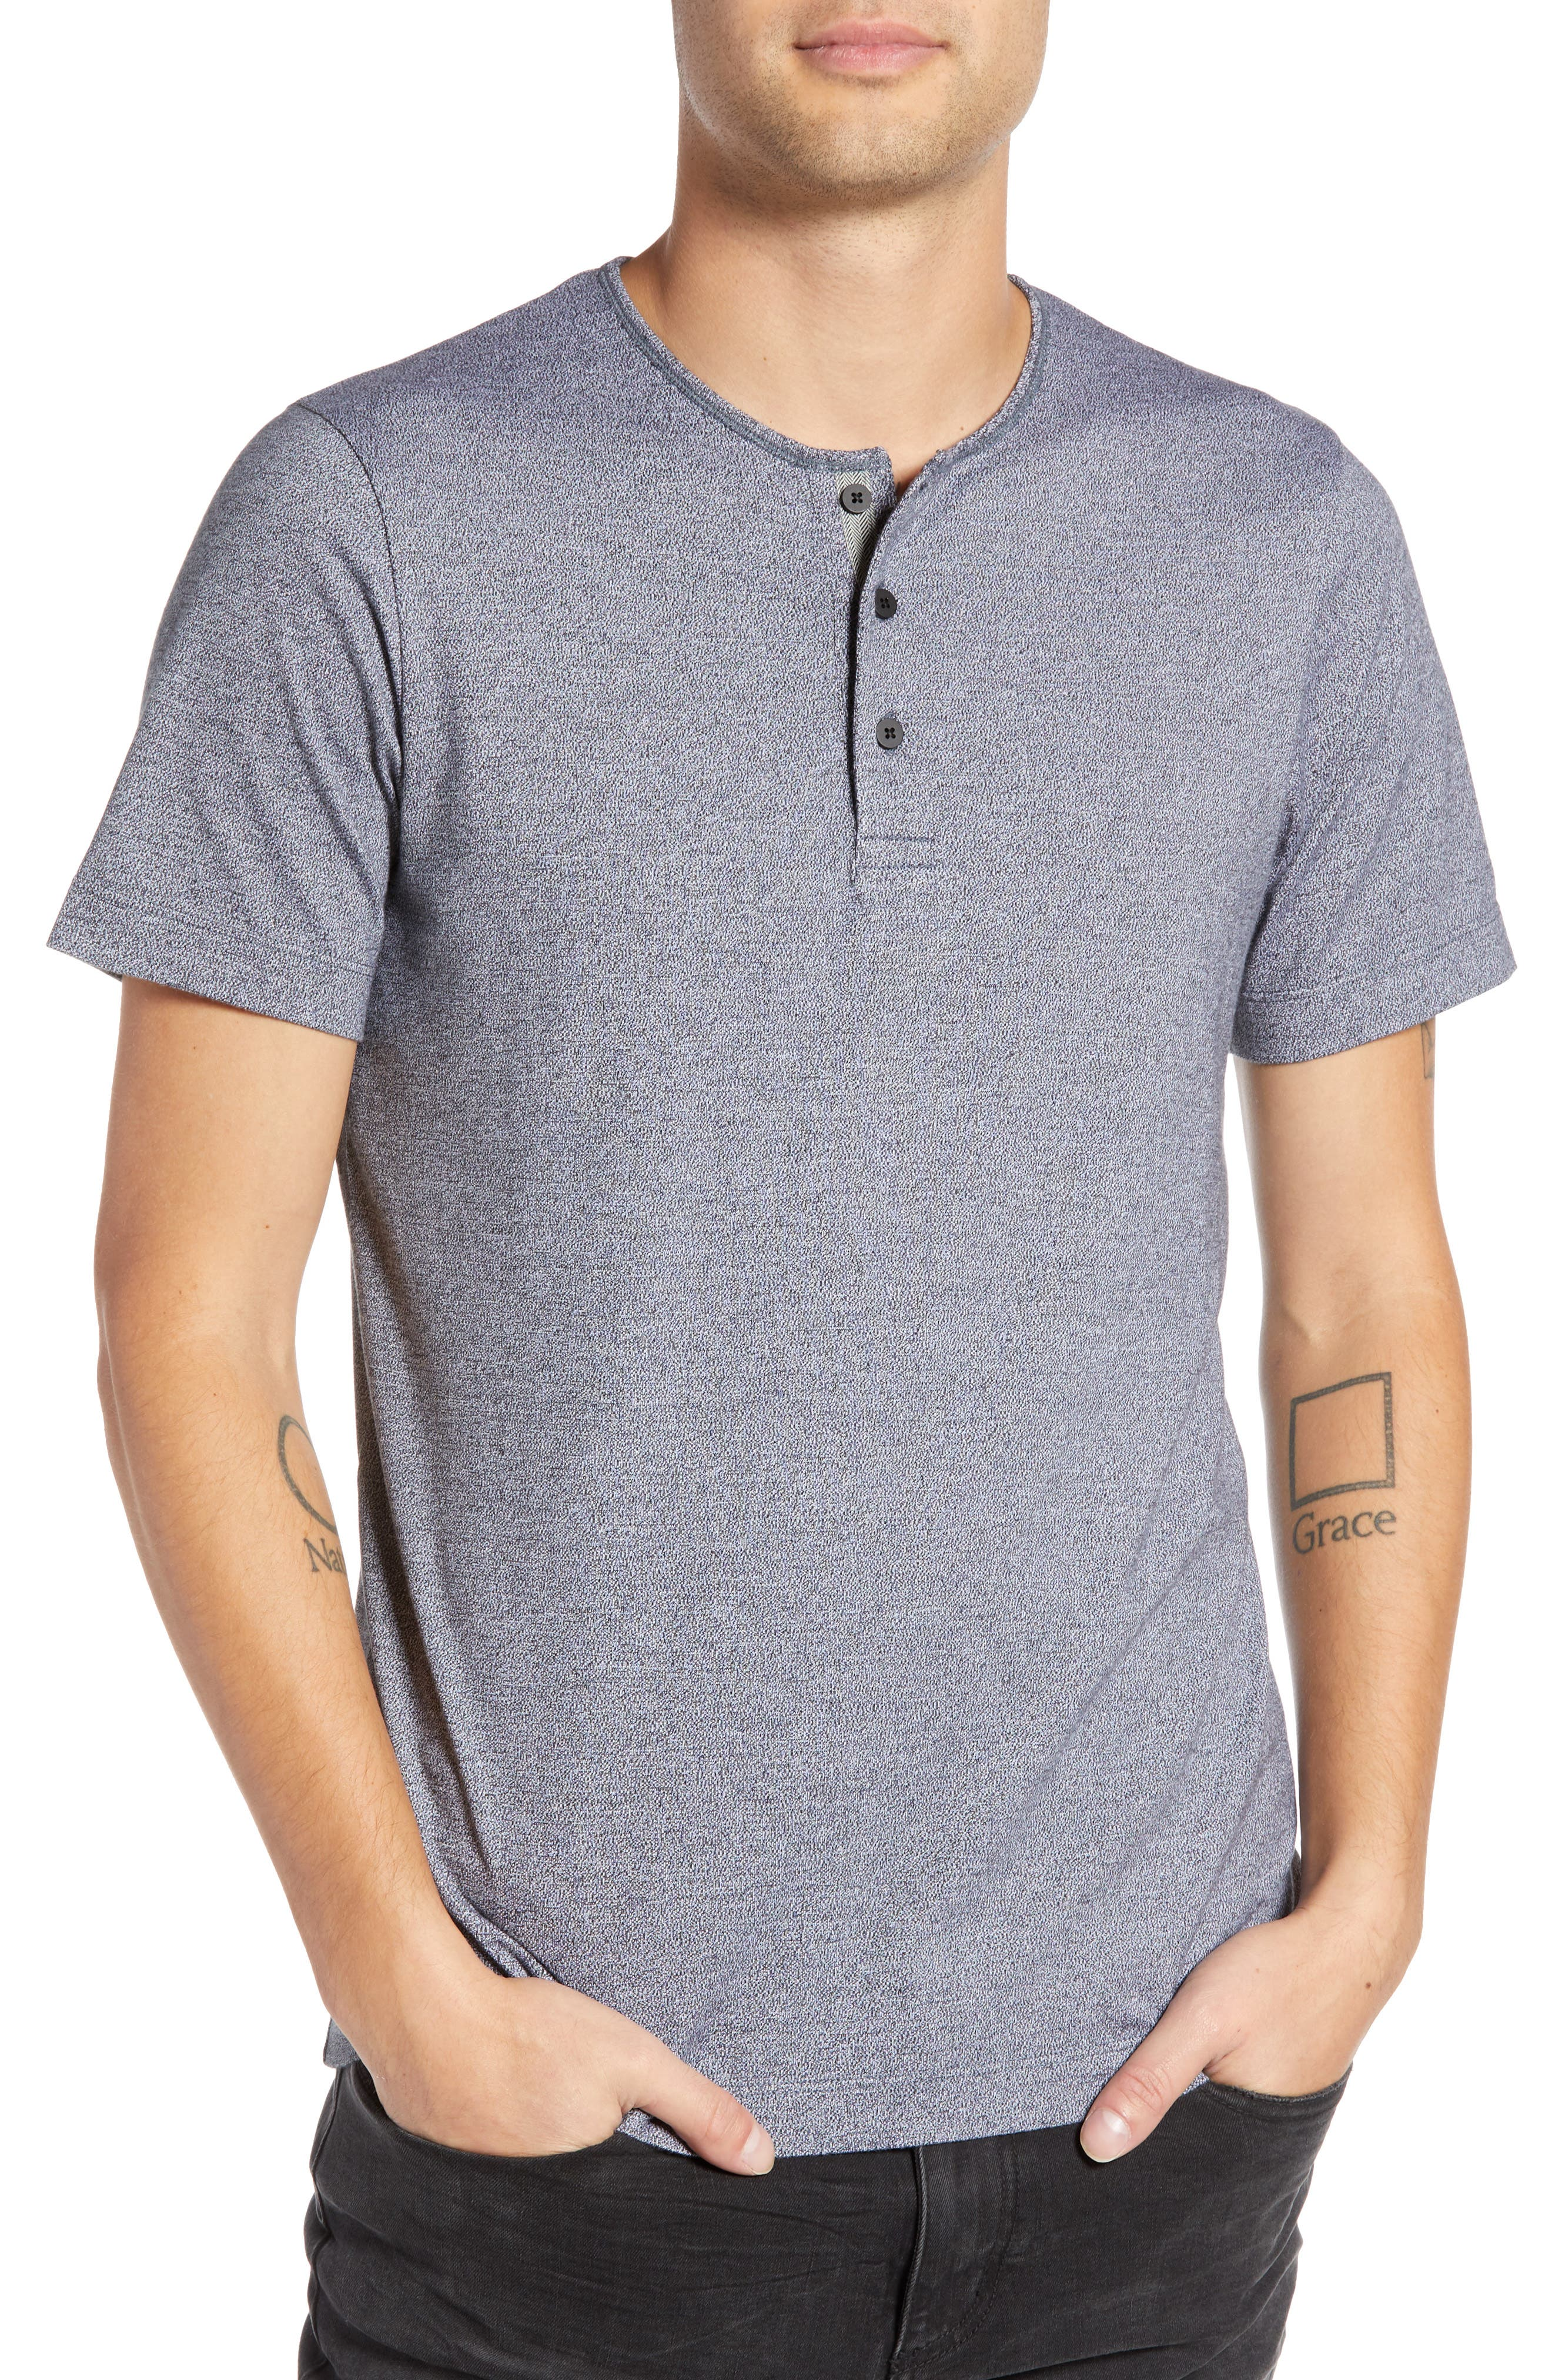 WINGS + HORNS Marled Henley T-Shirt, Main, color, 014